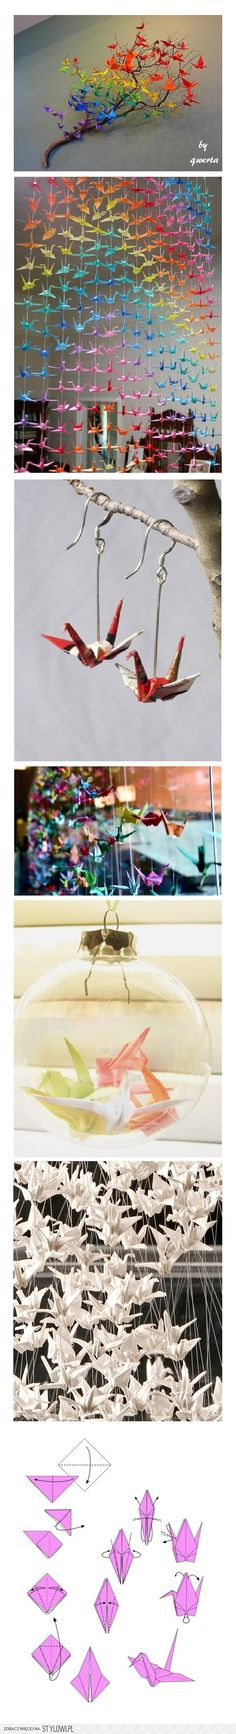 cool ideas for crane origamis :)